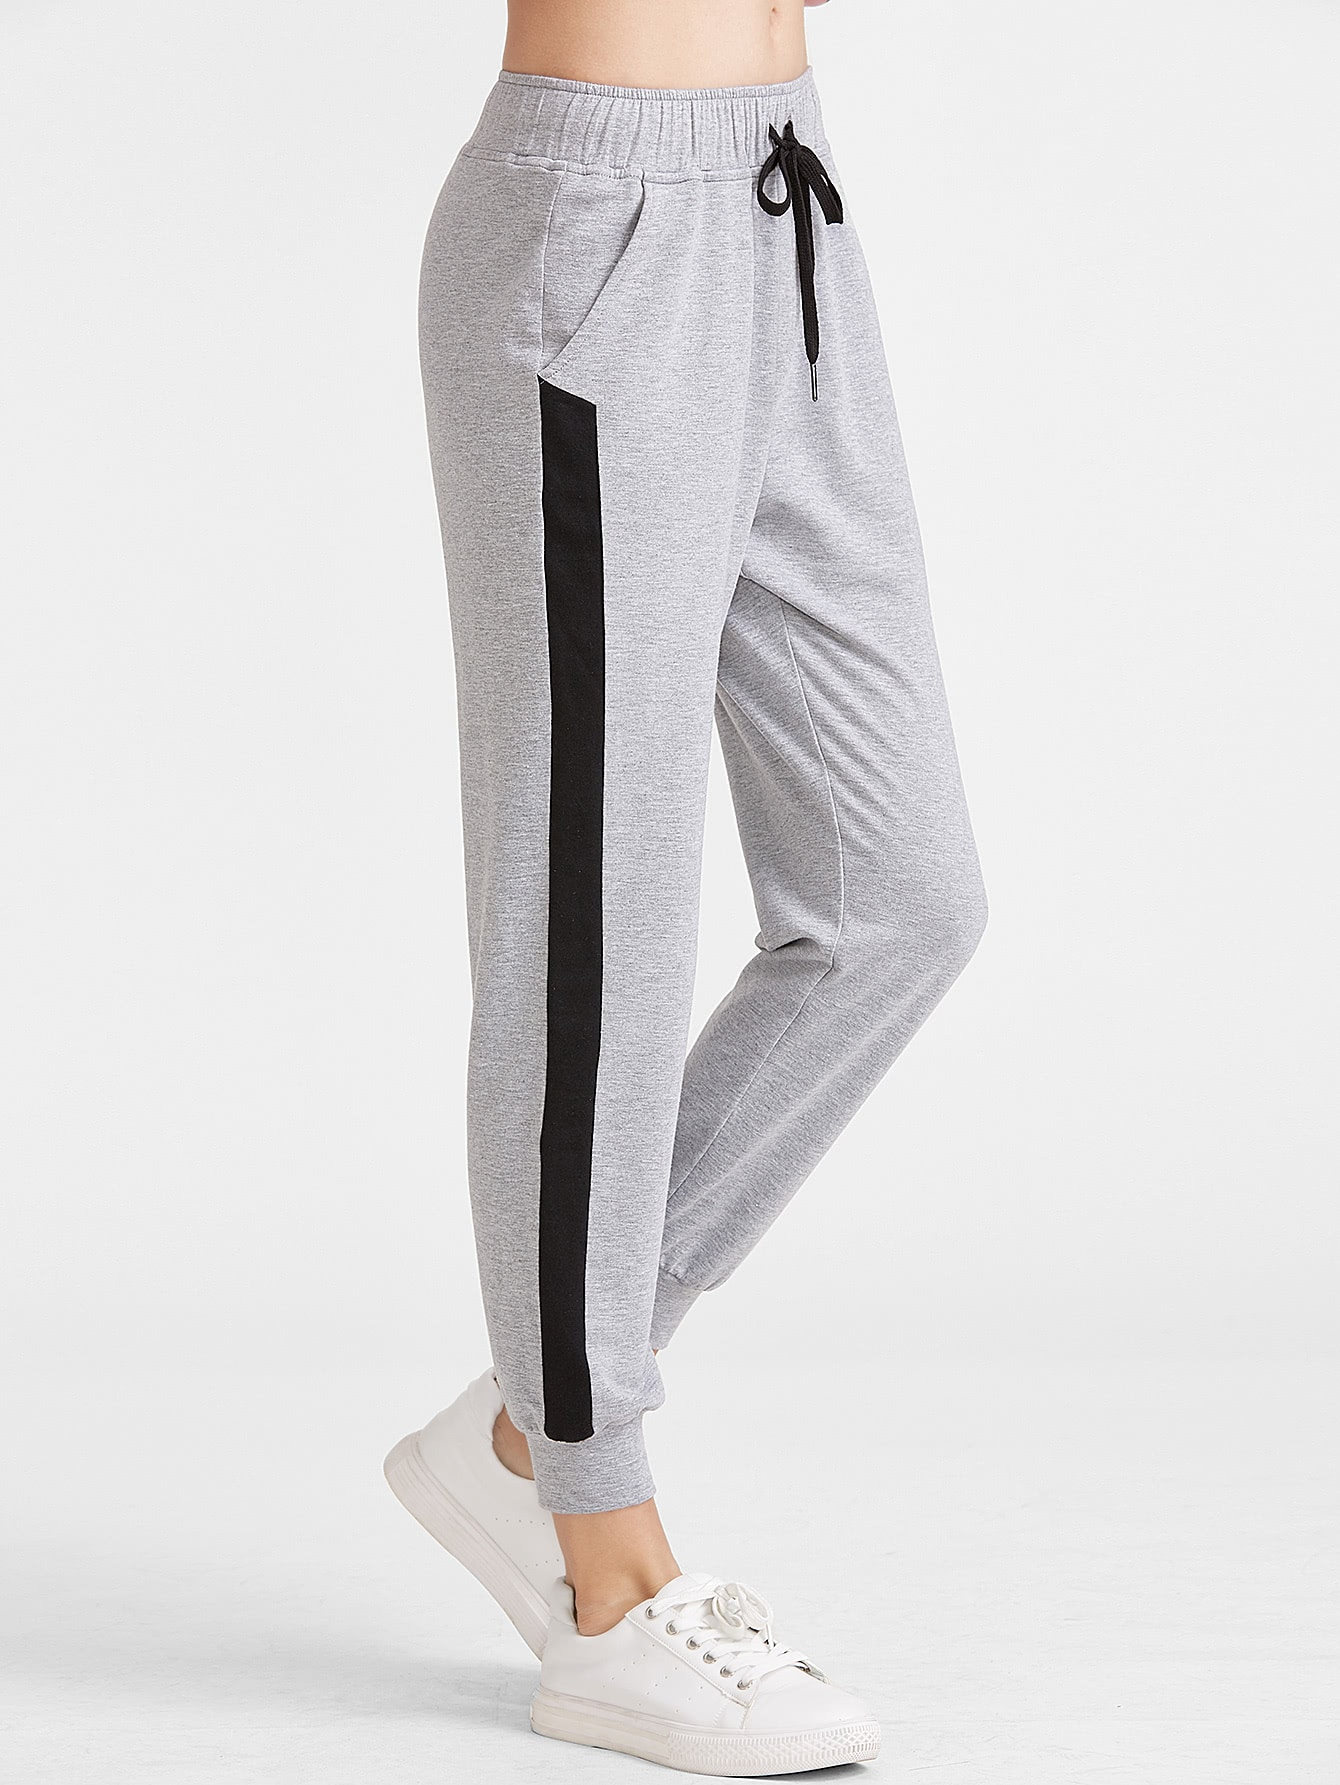 Heather Knit Contrast Panel Drawstring Sweatpants pants161230701